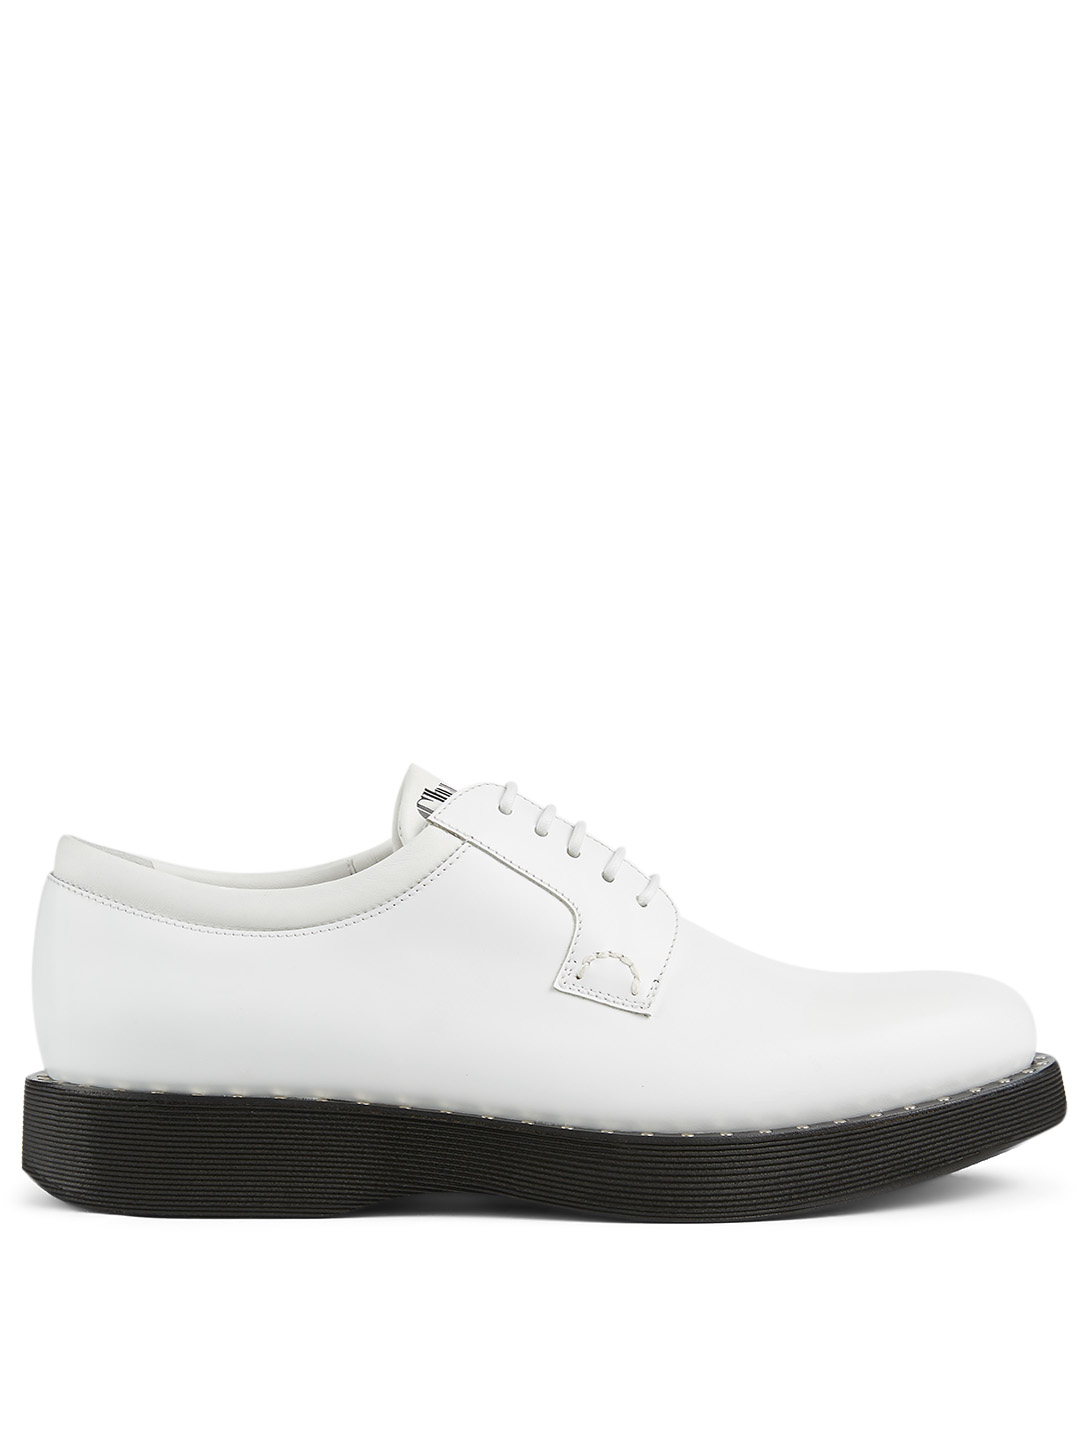 CHURCH'S Derbys Brandy en cuir Femmes Blanc